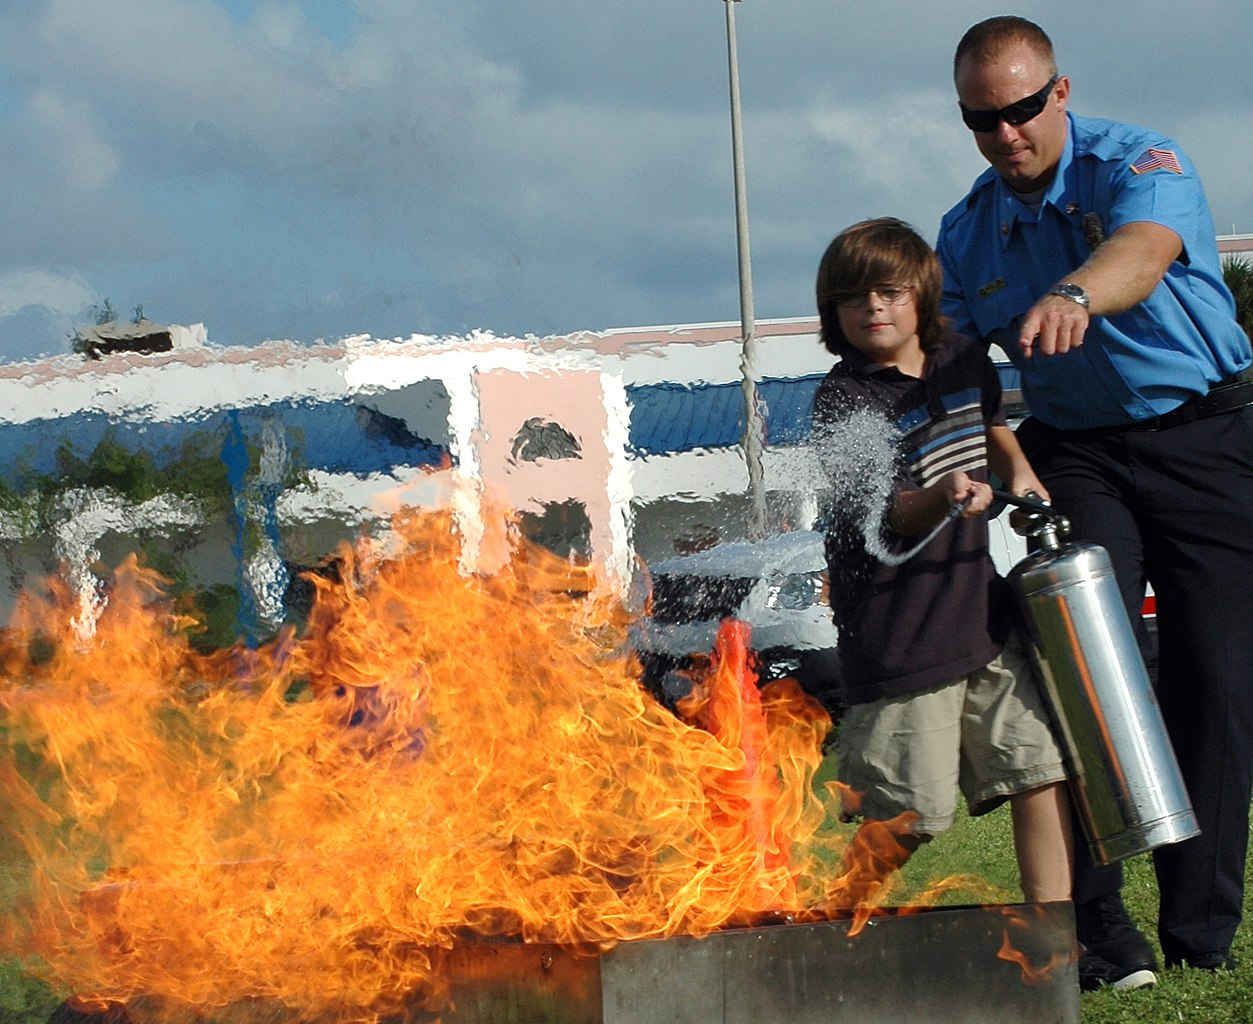 Niles Key West >> File:US Navy 081008-N-0311M-156 Richard Niles, a Naval Air Station Key West firefighter, teaches ...